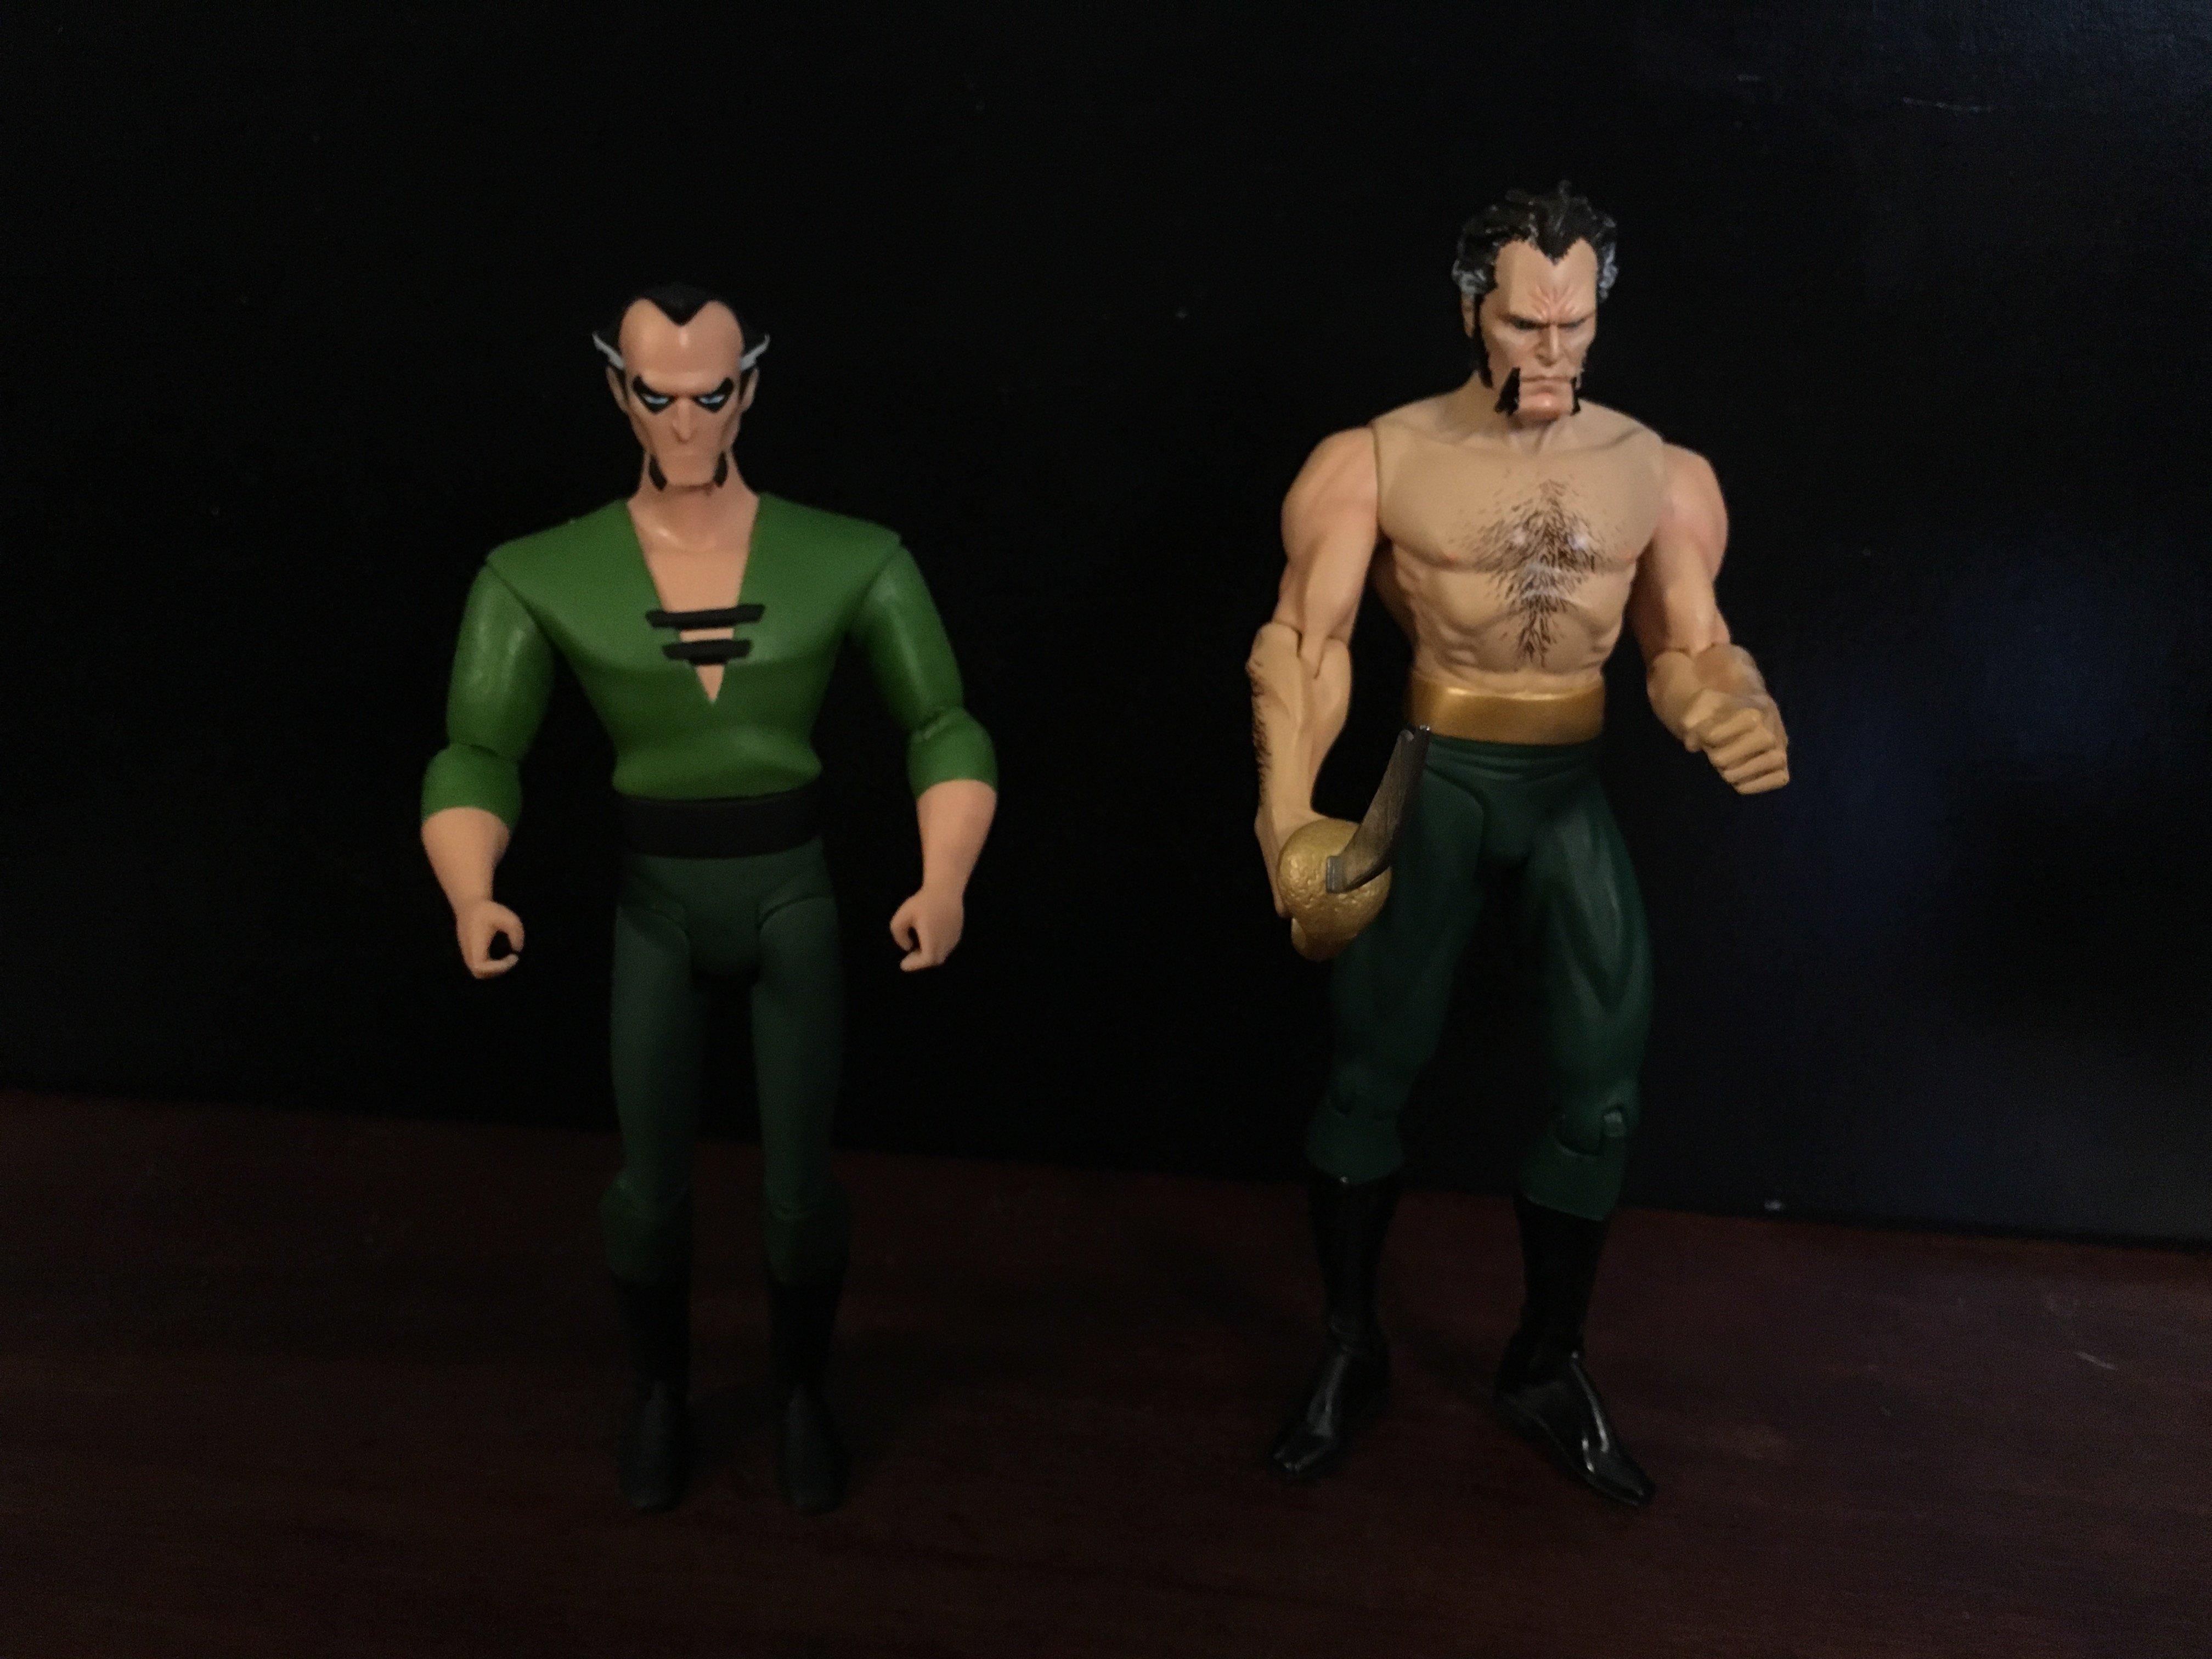 Animated Ra's and Hush Ra's (from the then-DC Direct)